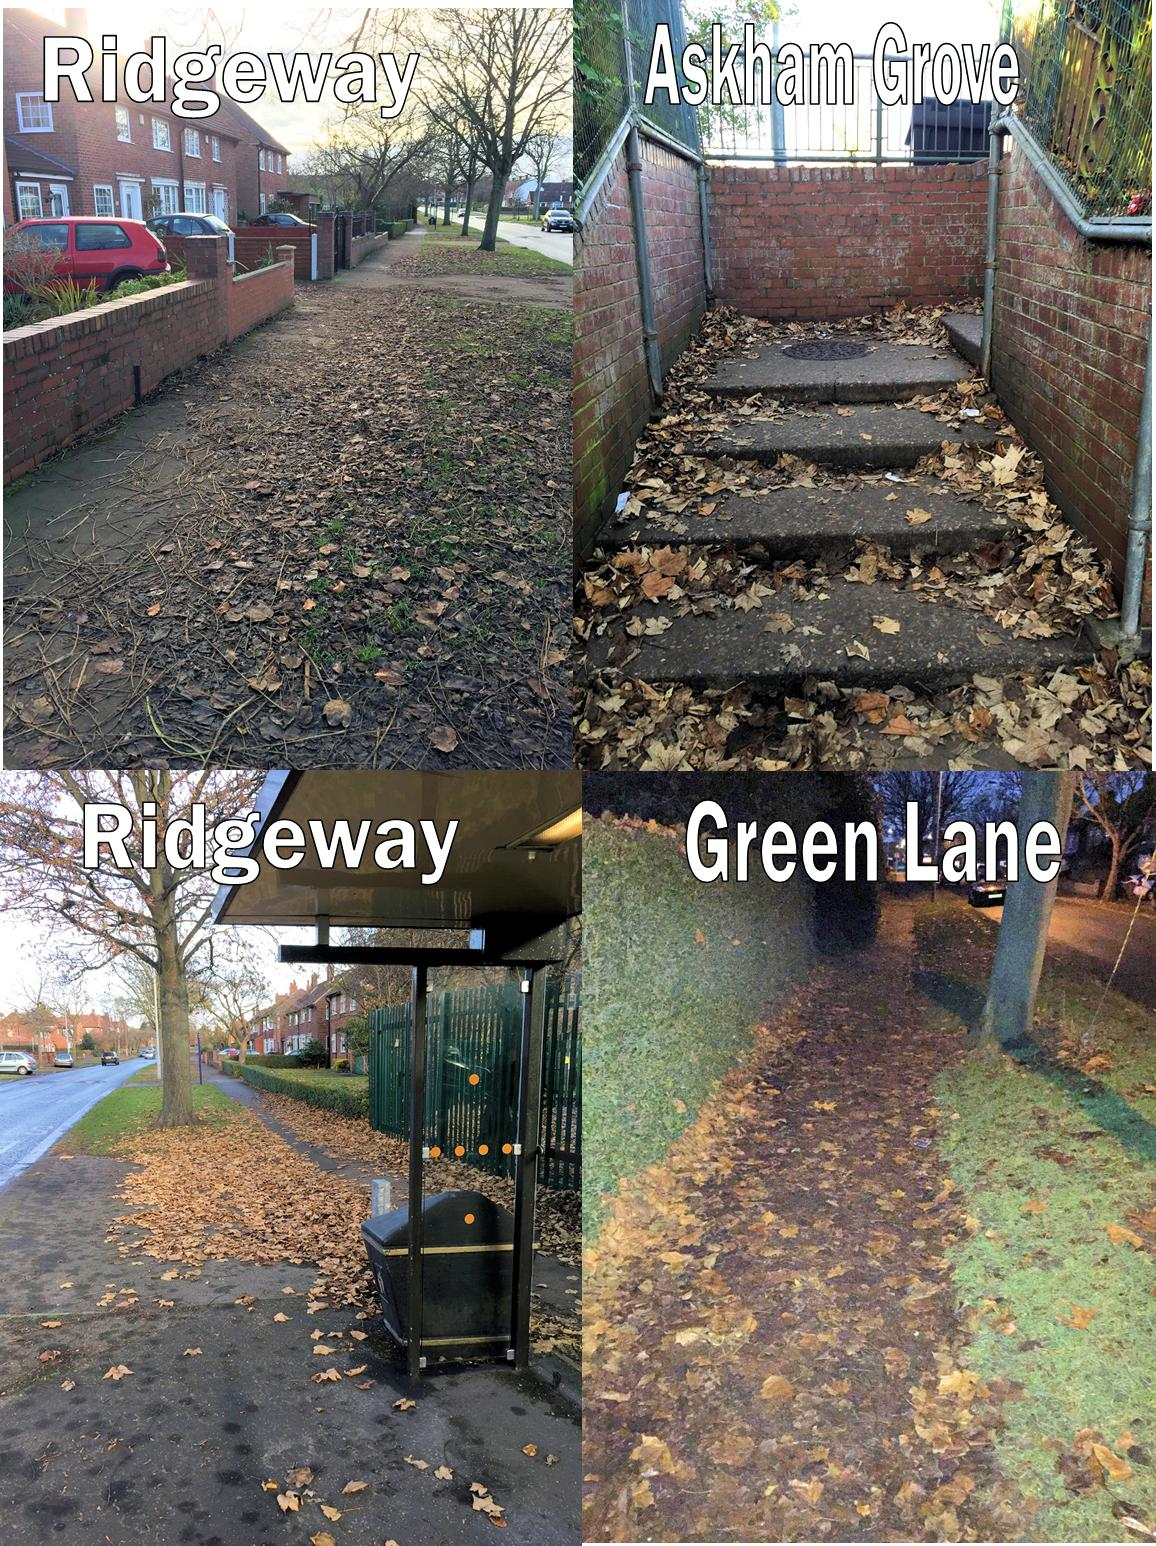 ... while Andrew also reported what we hope will be the last of the problems with leaf-fall around the area.